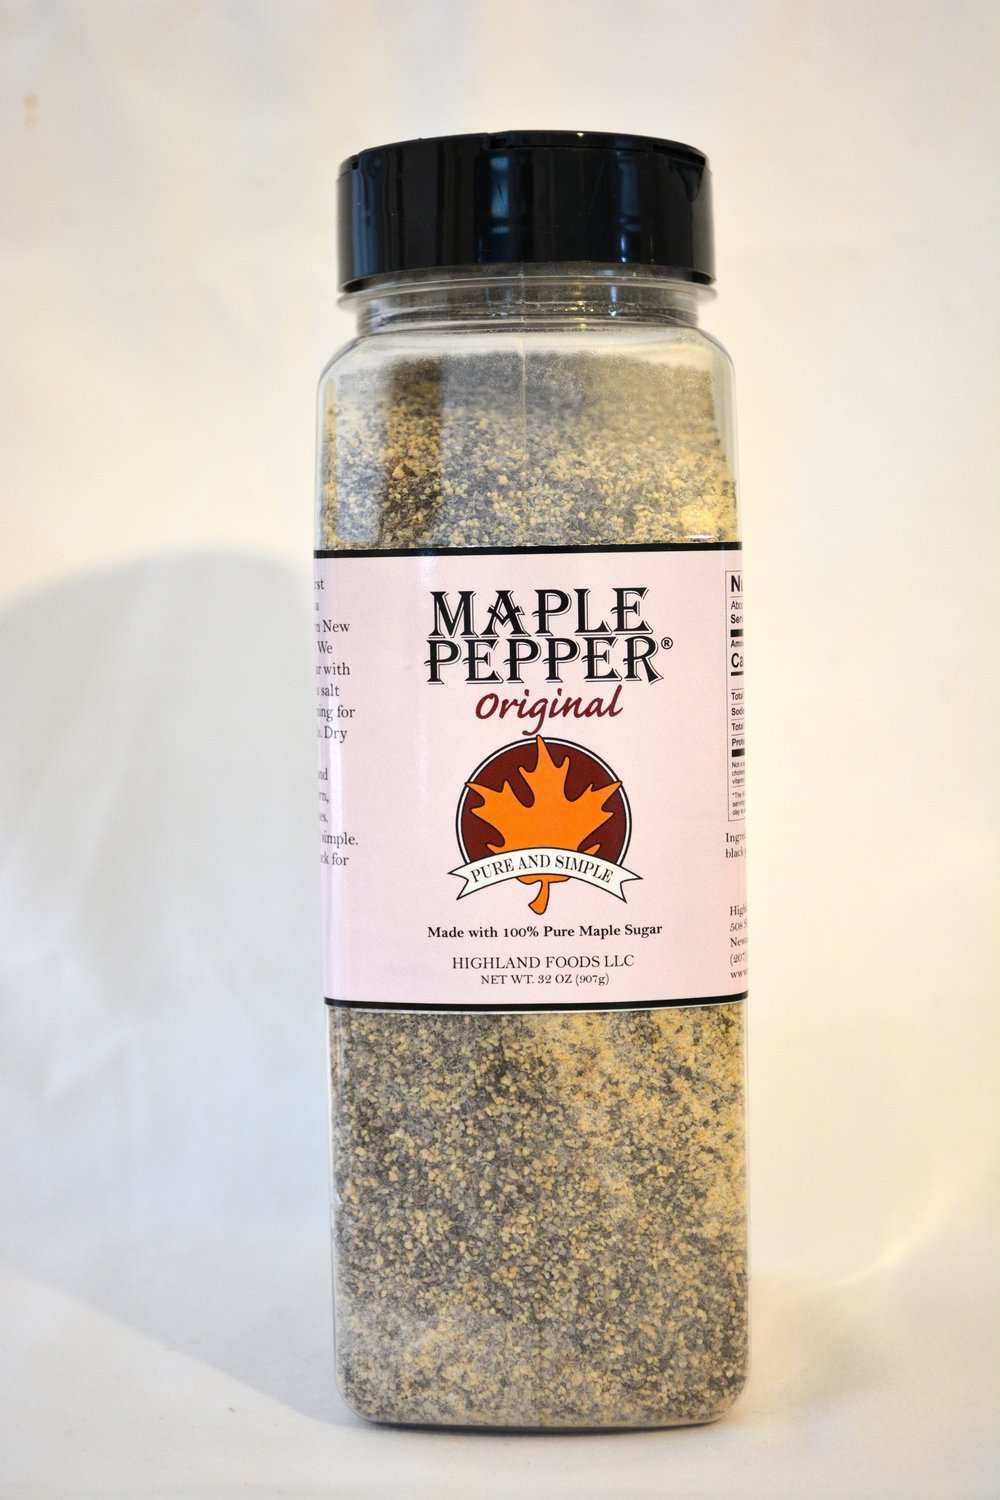 Maple Pepper® Original: 2 lb. pour & shake